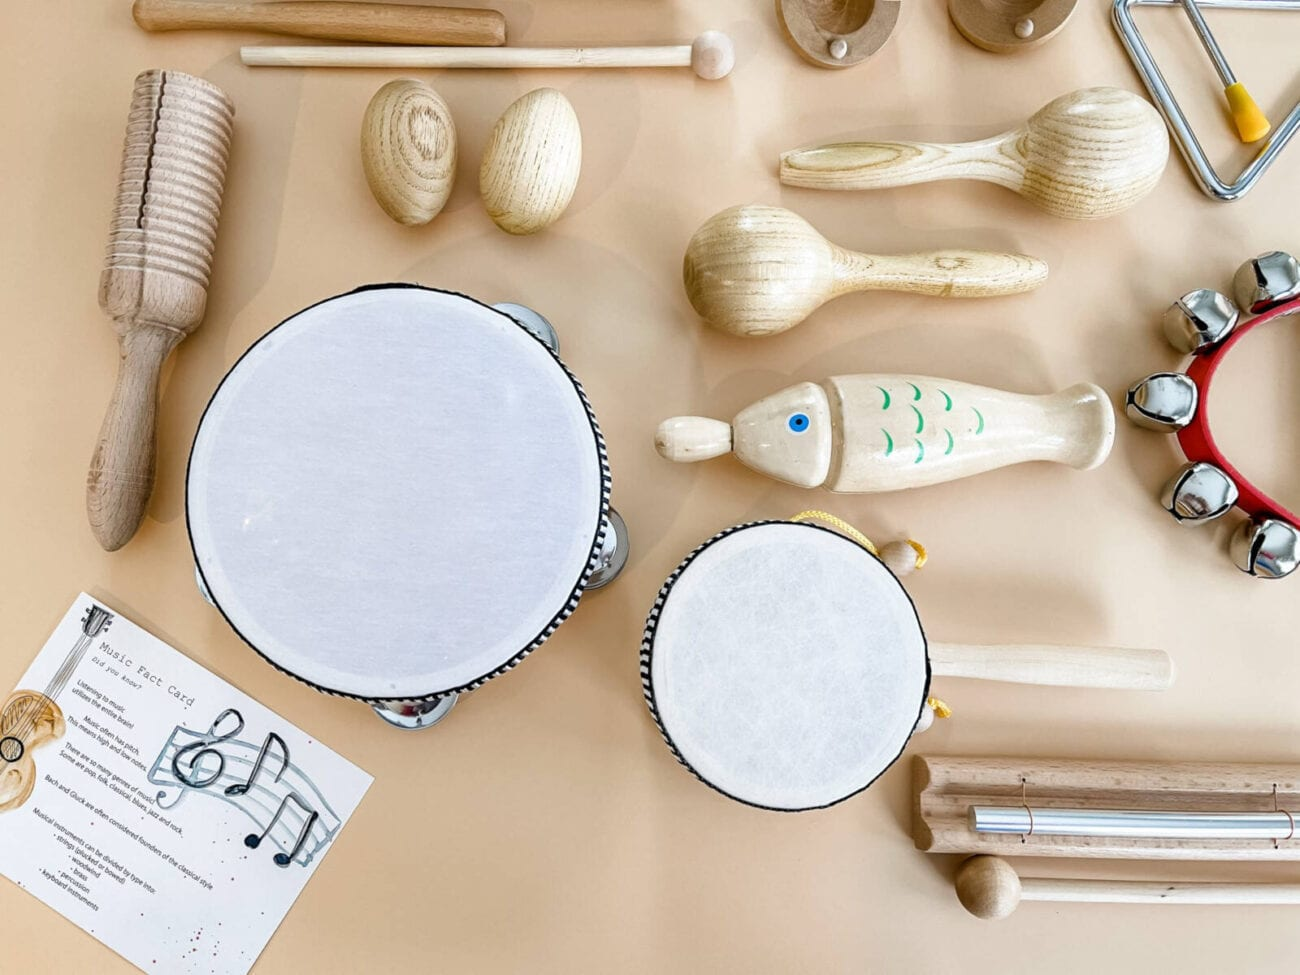 The Montessori method allows toddlers to improve cognition and brain function. Teach your child music the Montessori way to stimulate their development!